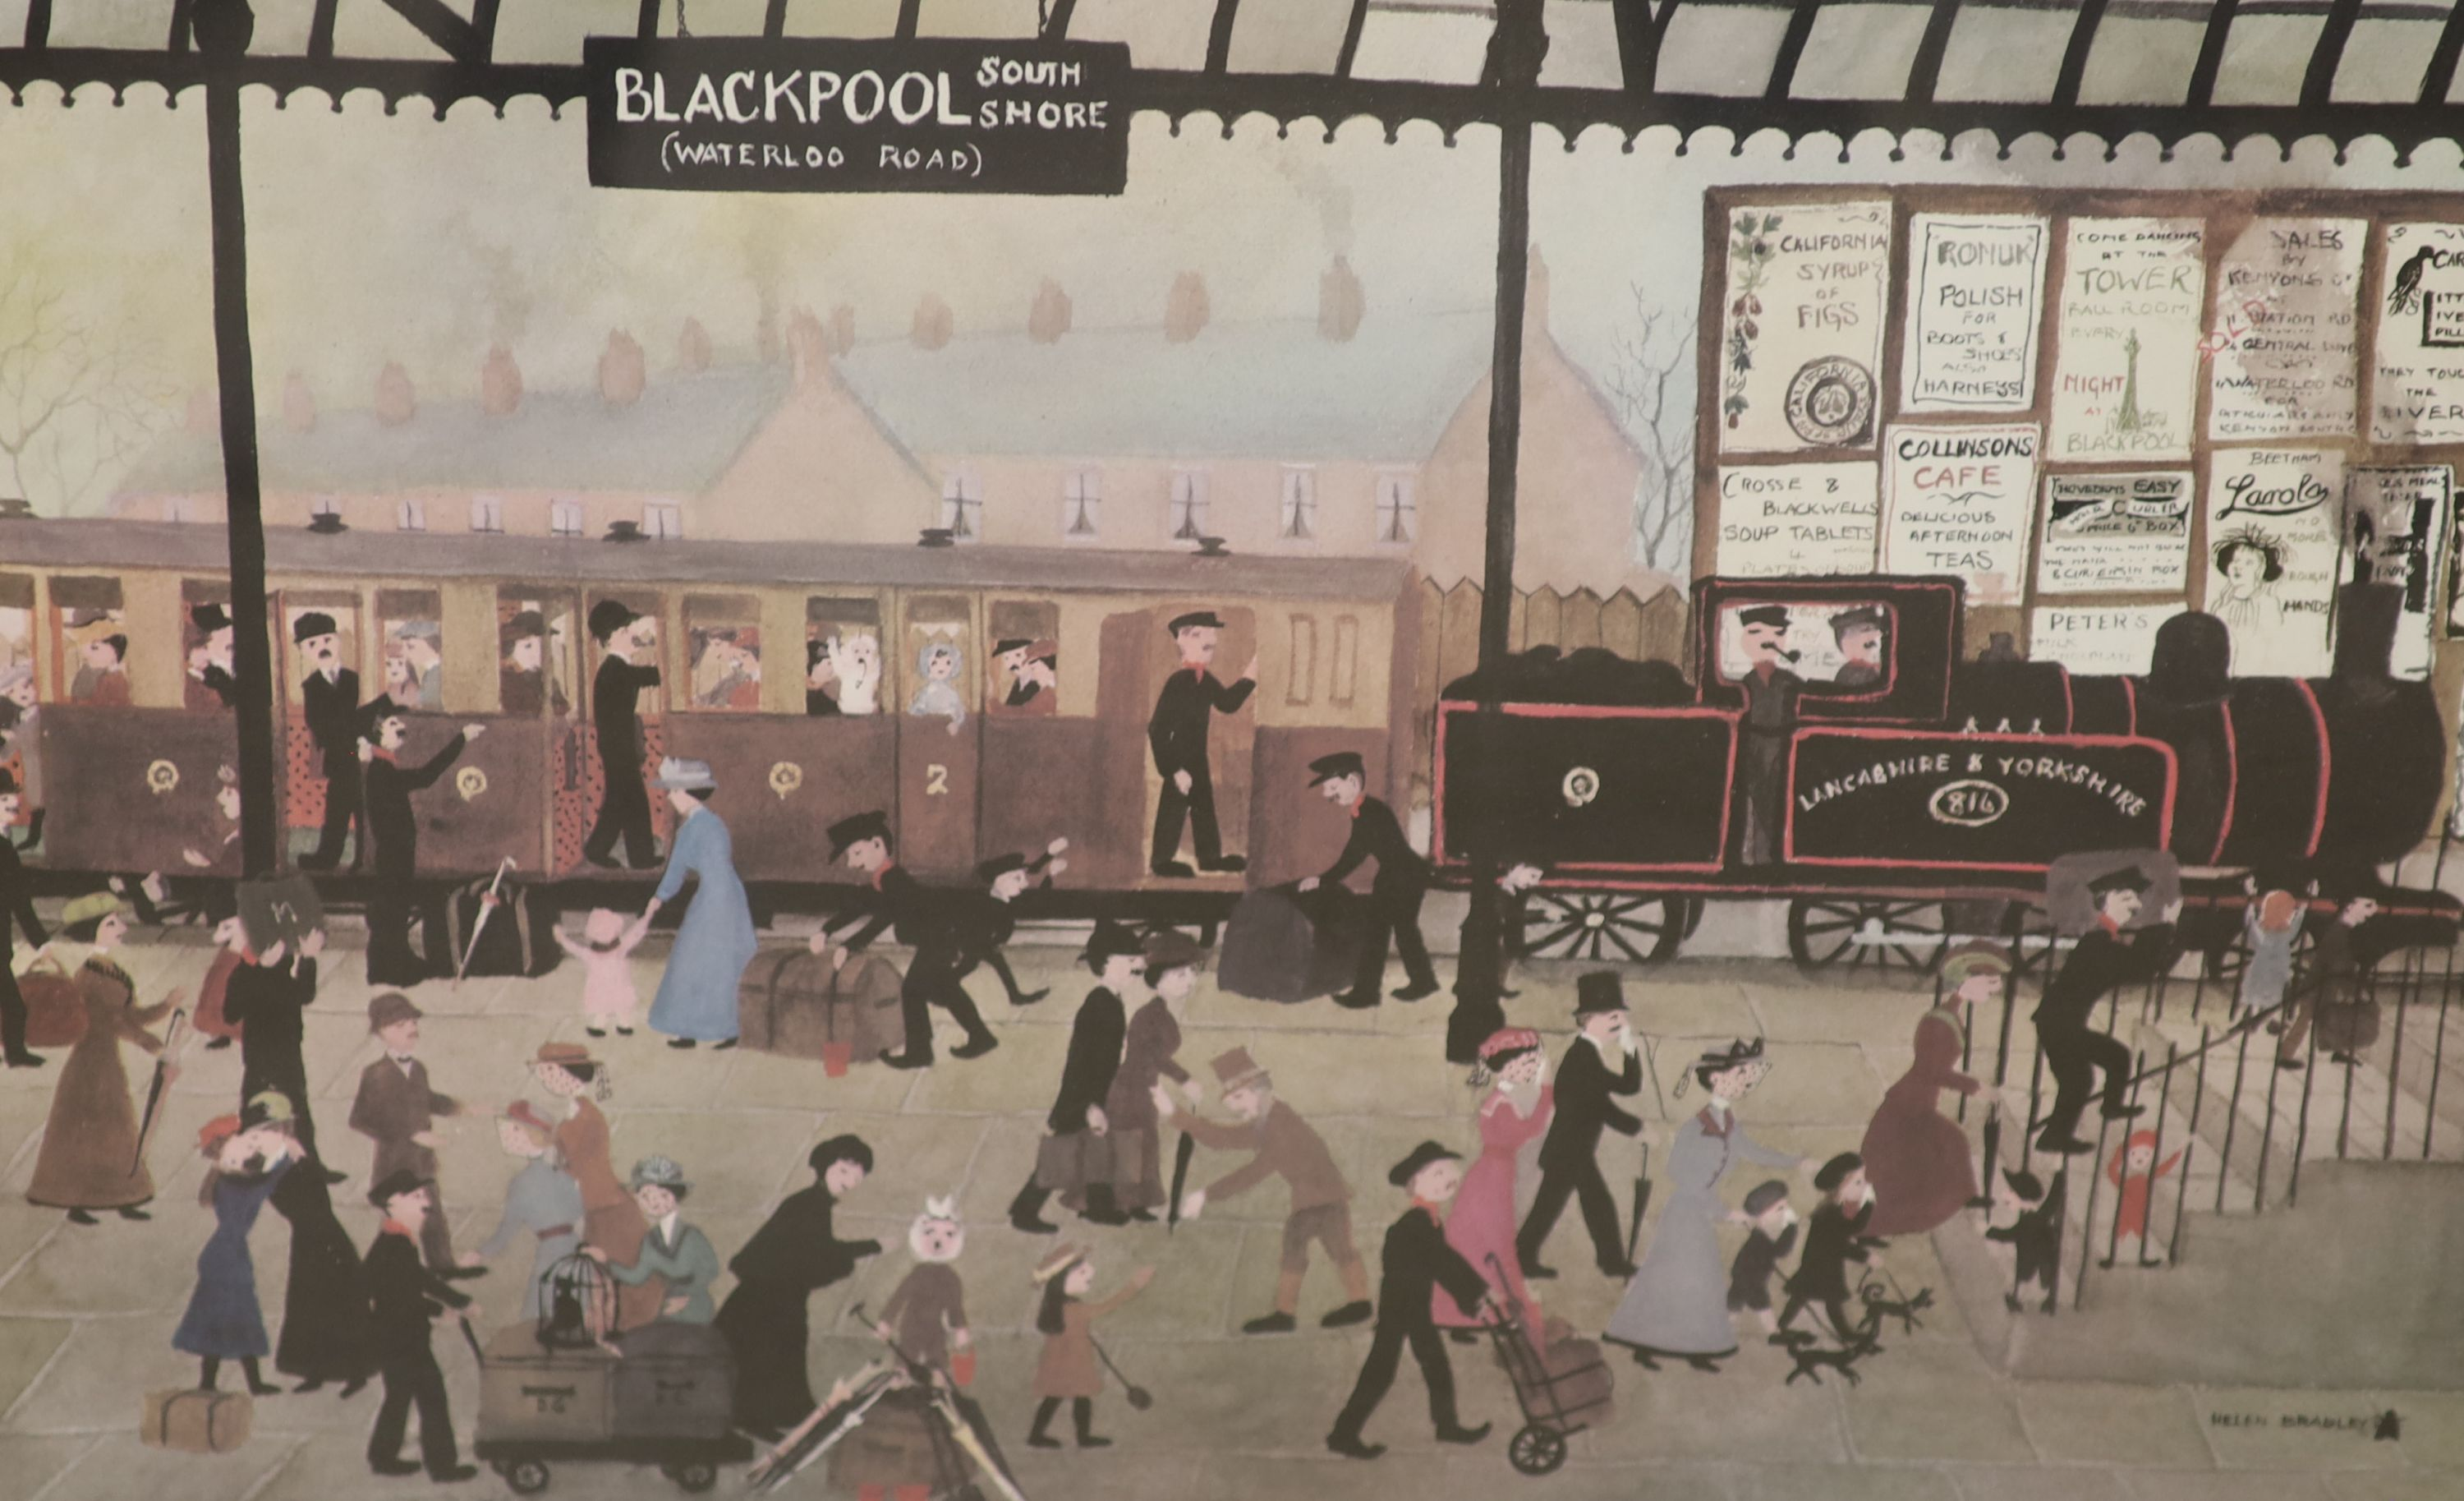 Helen Bradley, two signed prints, Blackpool Station and Blackpool Sands, both signed in pencil, - Image 2 of 3